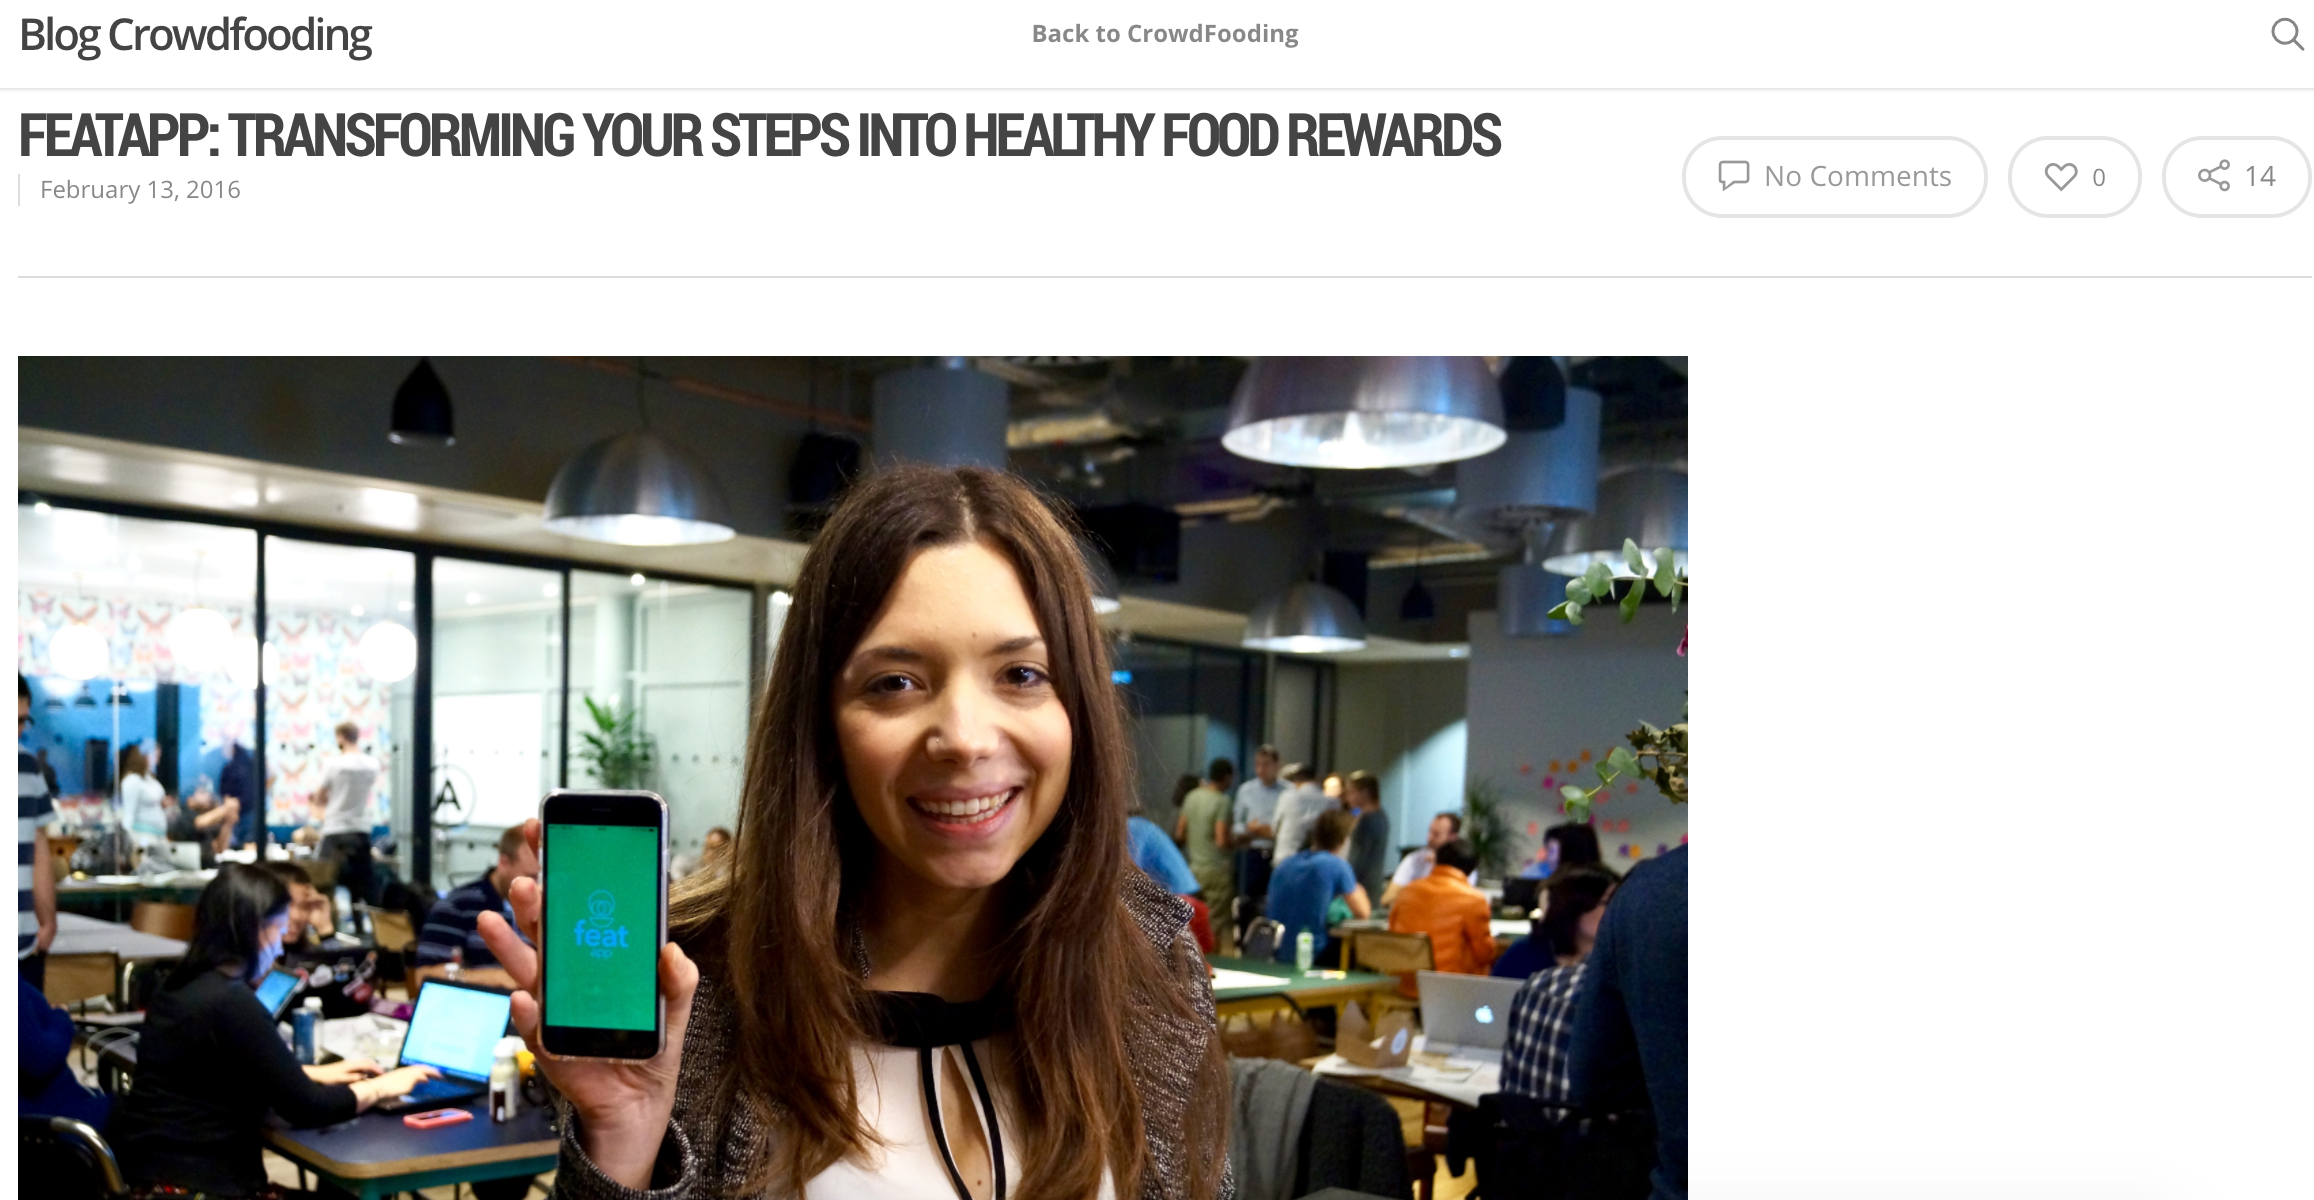 featapp: transforming your steps into healthy food rewards - Crowdfooding, February 2016